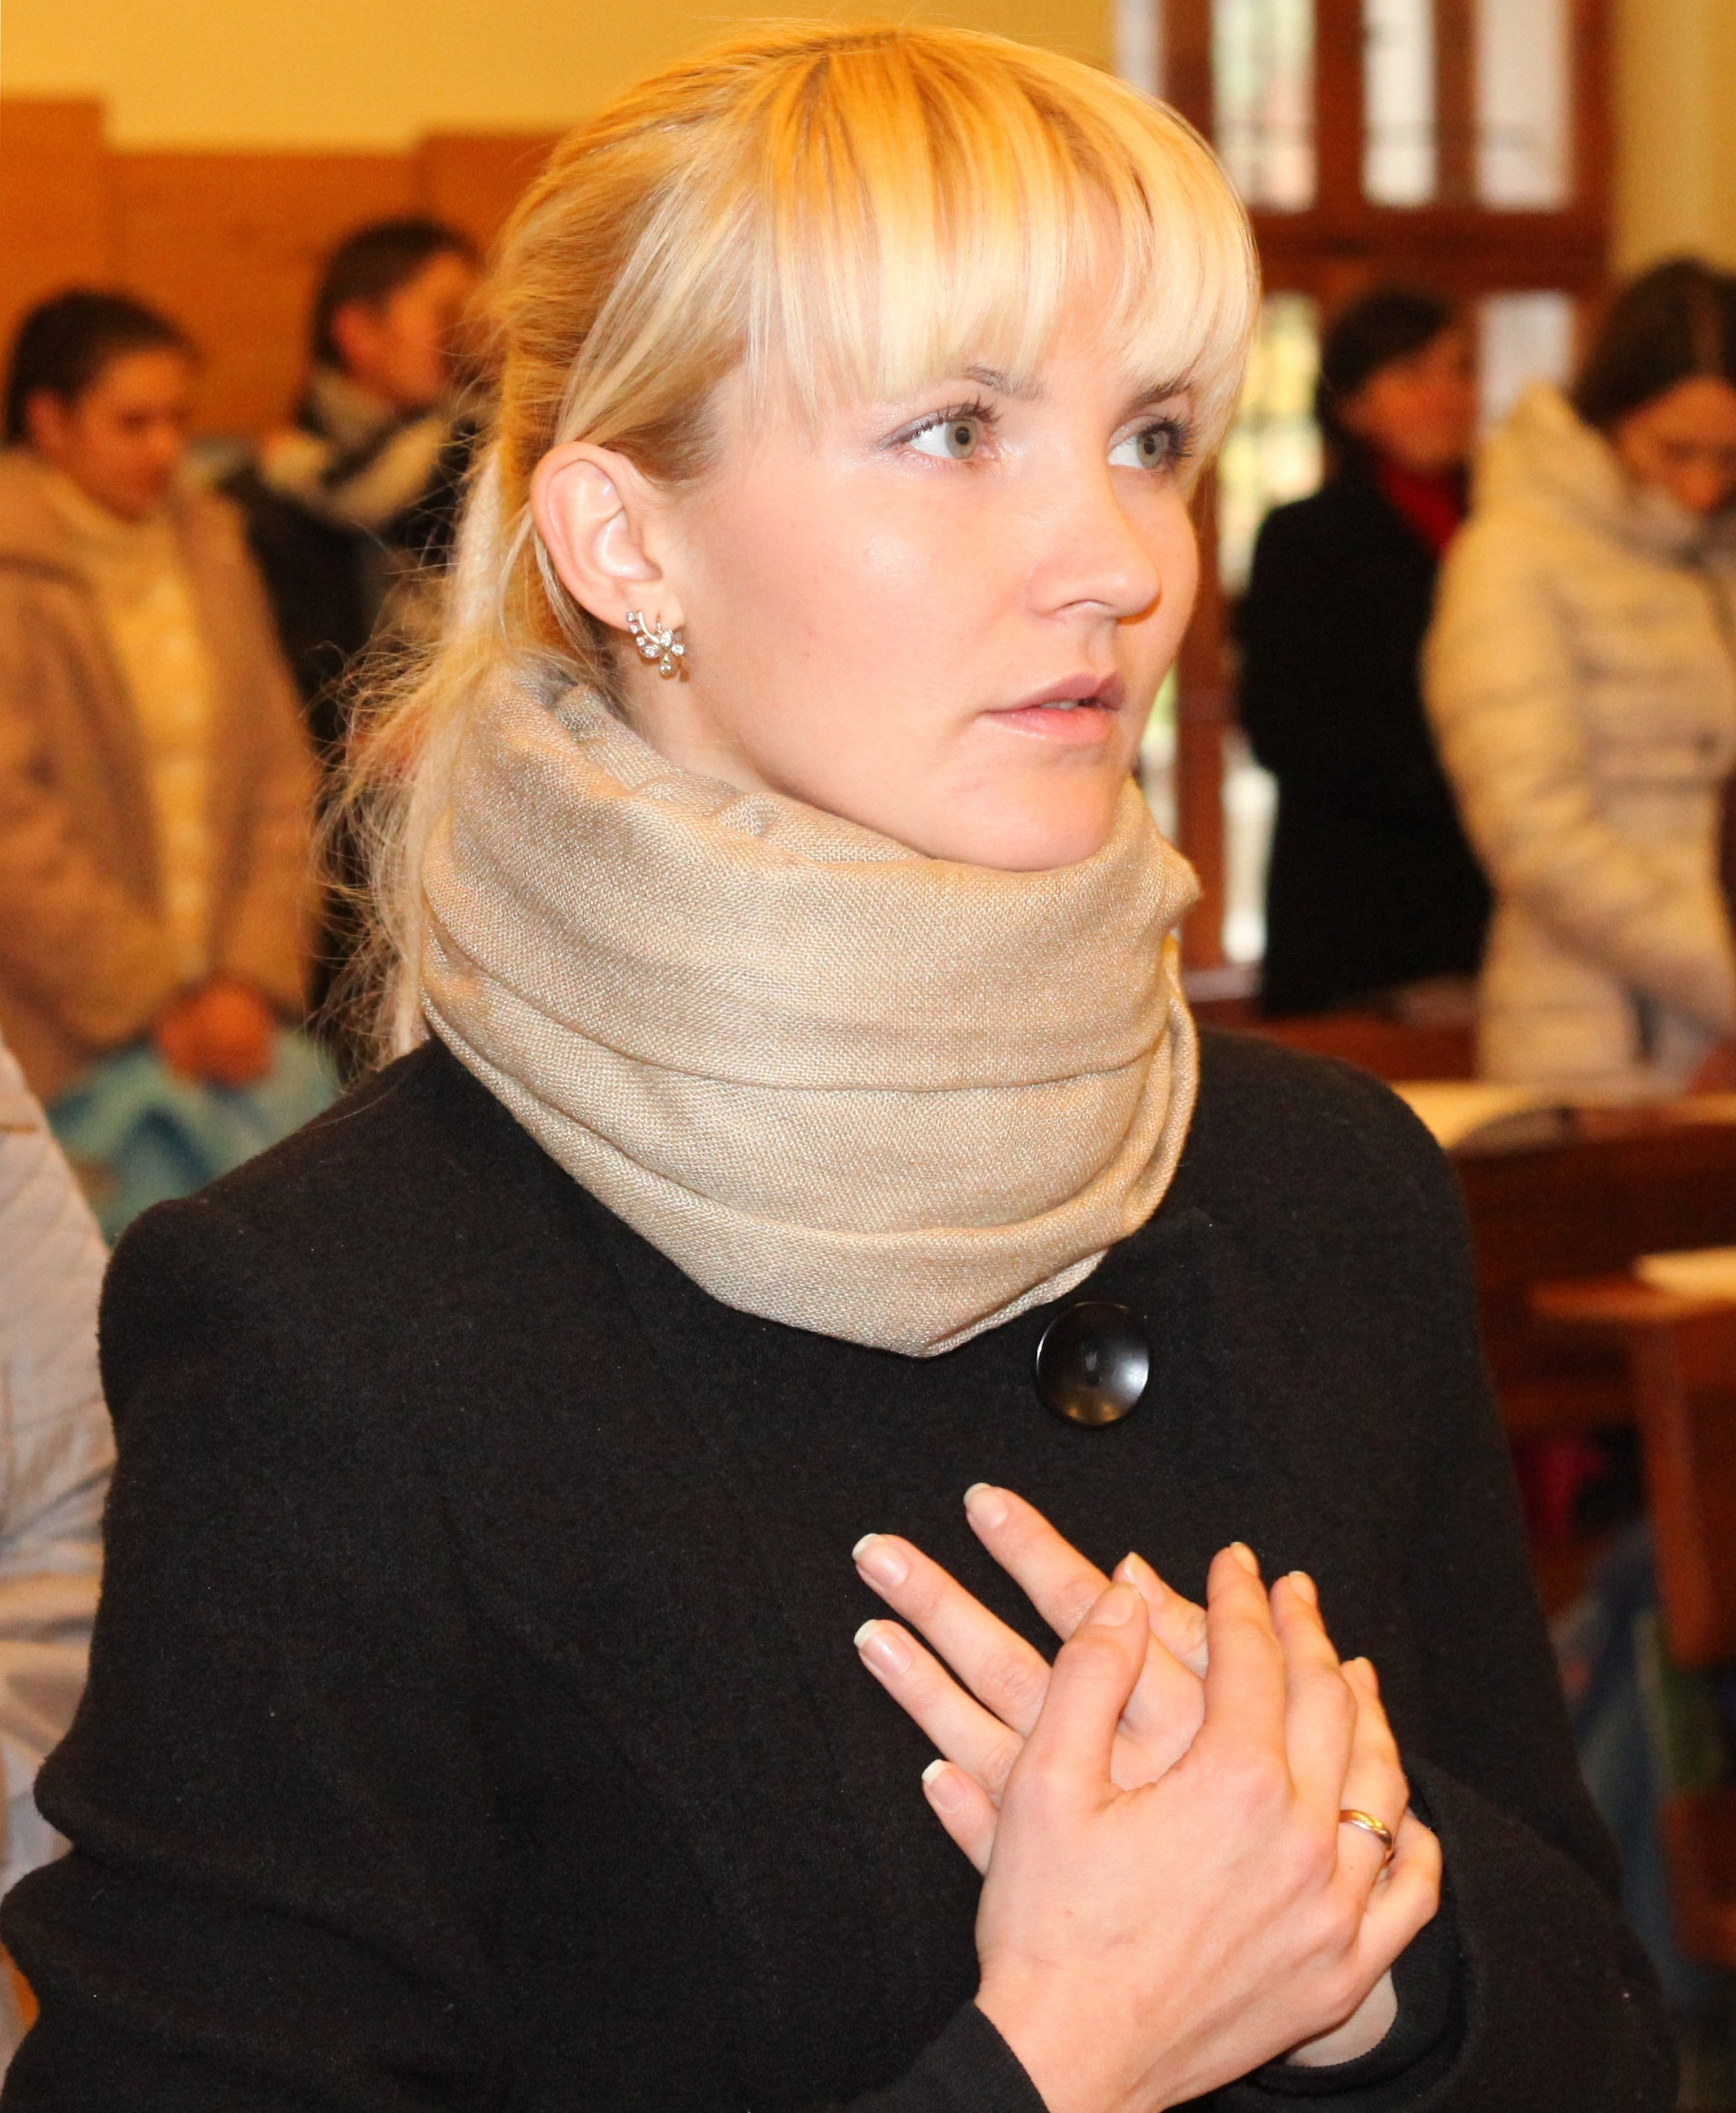 an amazingly tender and charming beautiful young blond Catholic woman in a Church, photo 3